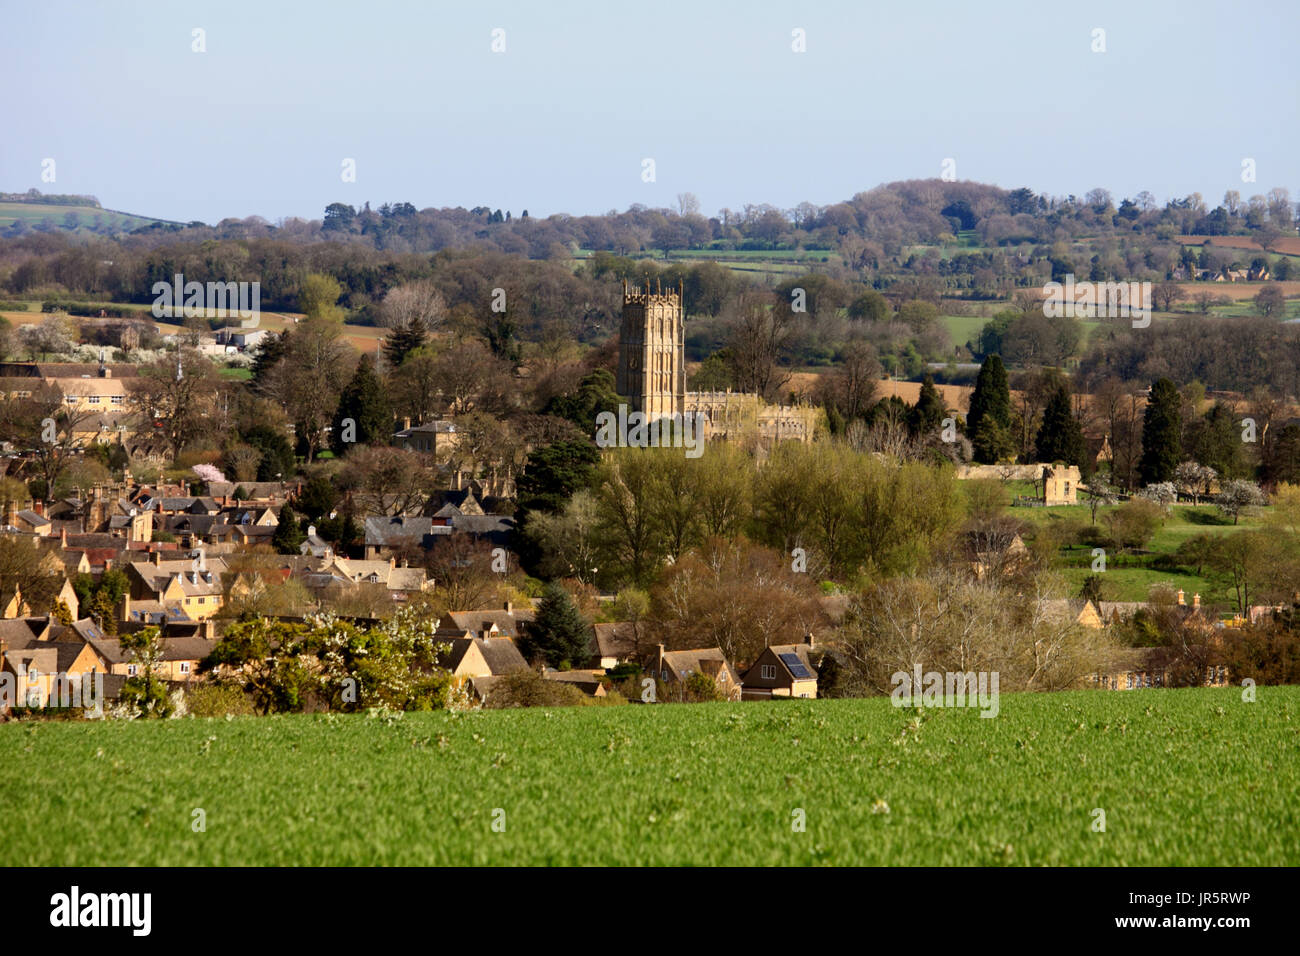 The wool church of St James dominates this view of Chipping Campden in Gloucestershire. - Stock Image